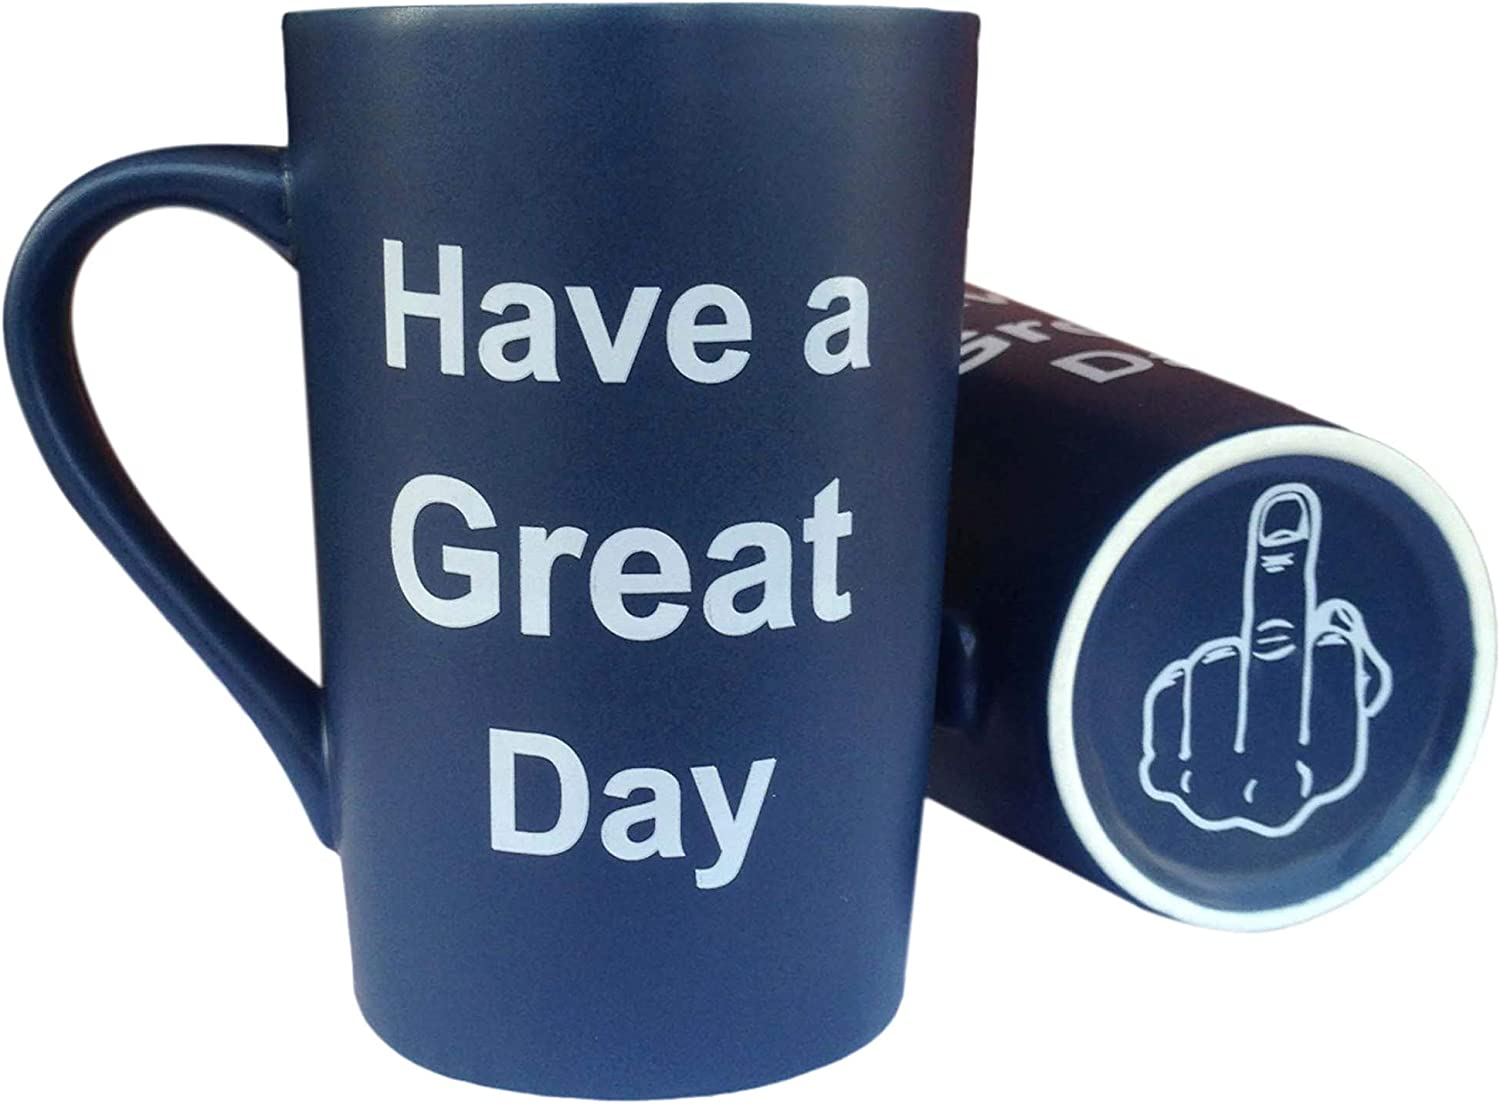 MAUAG Funny Coffee Mug Have a Great Day Cup Blue, 13 Oz